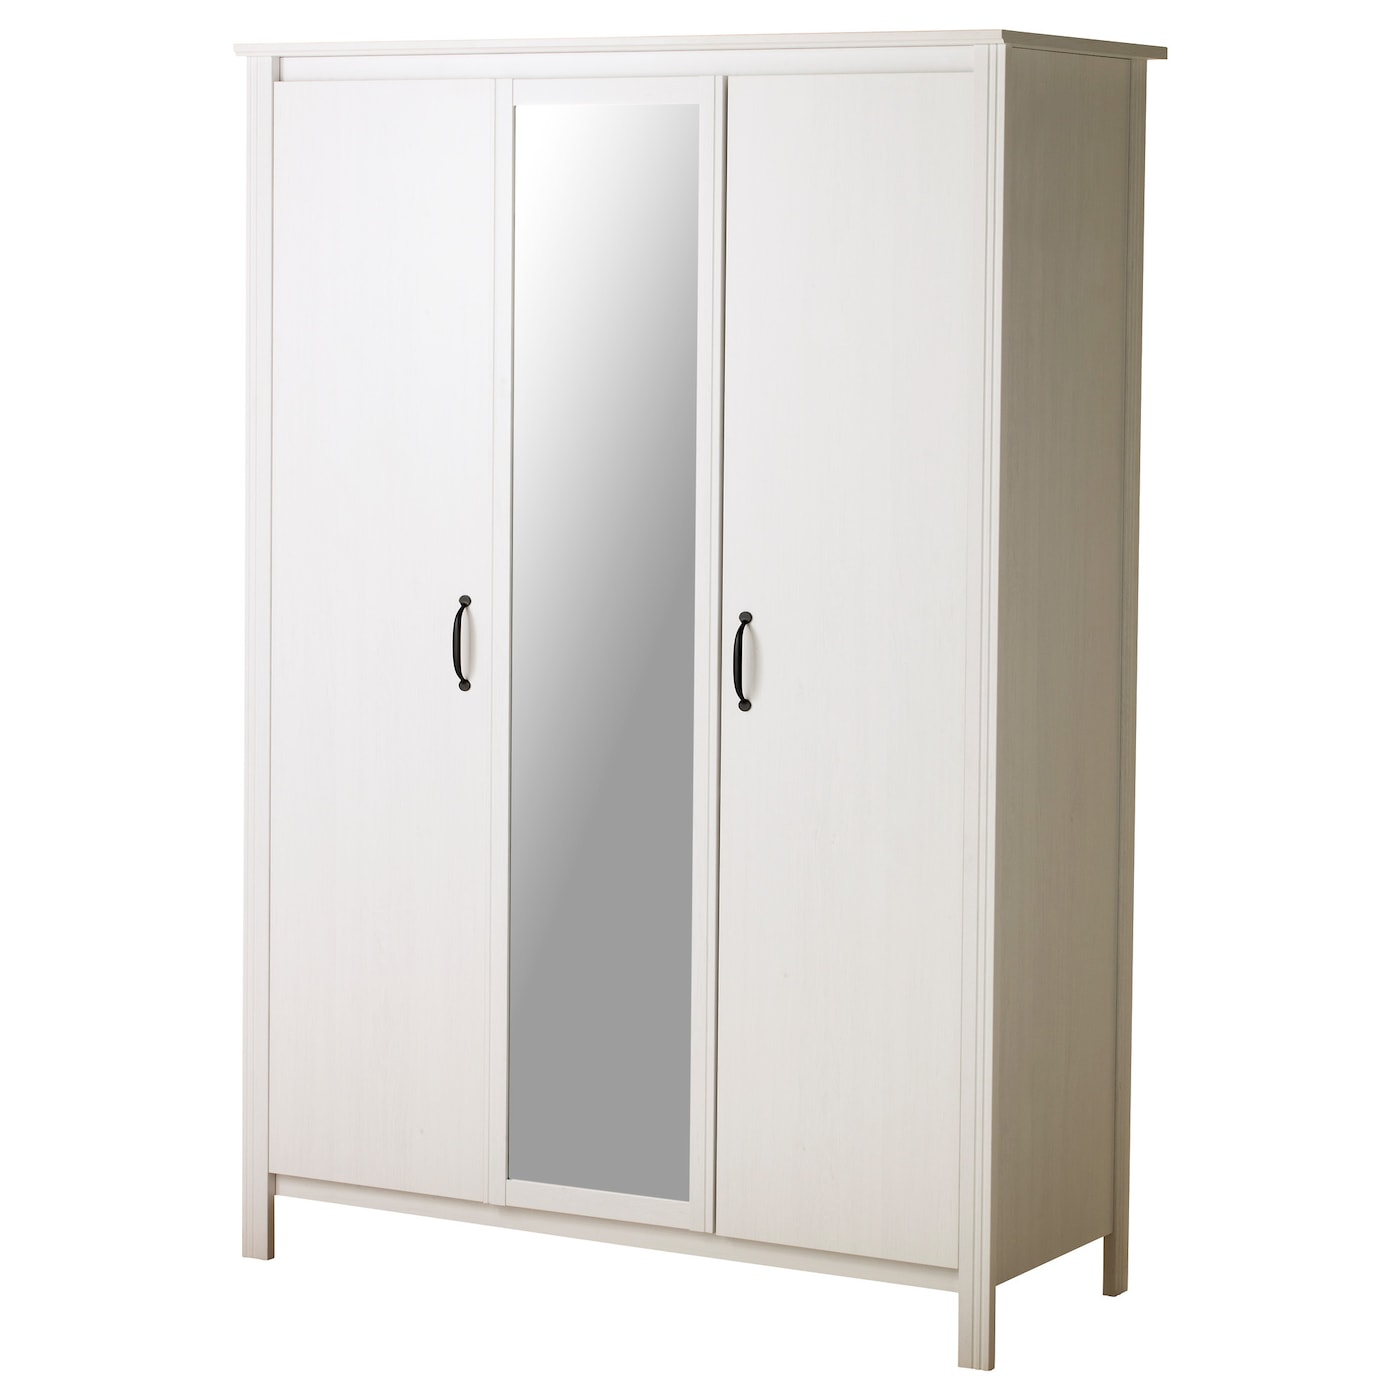 IKEA | Storage Furniture & Storage Units